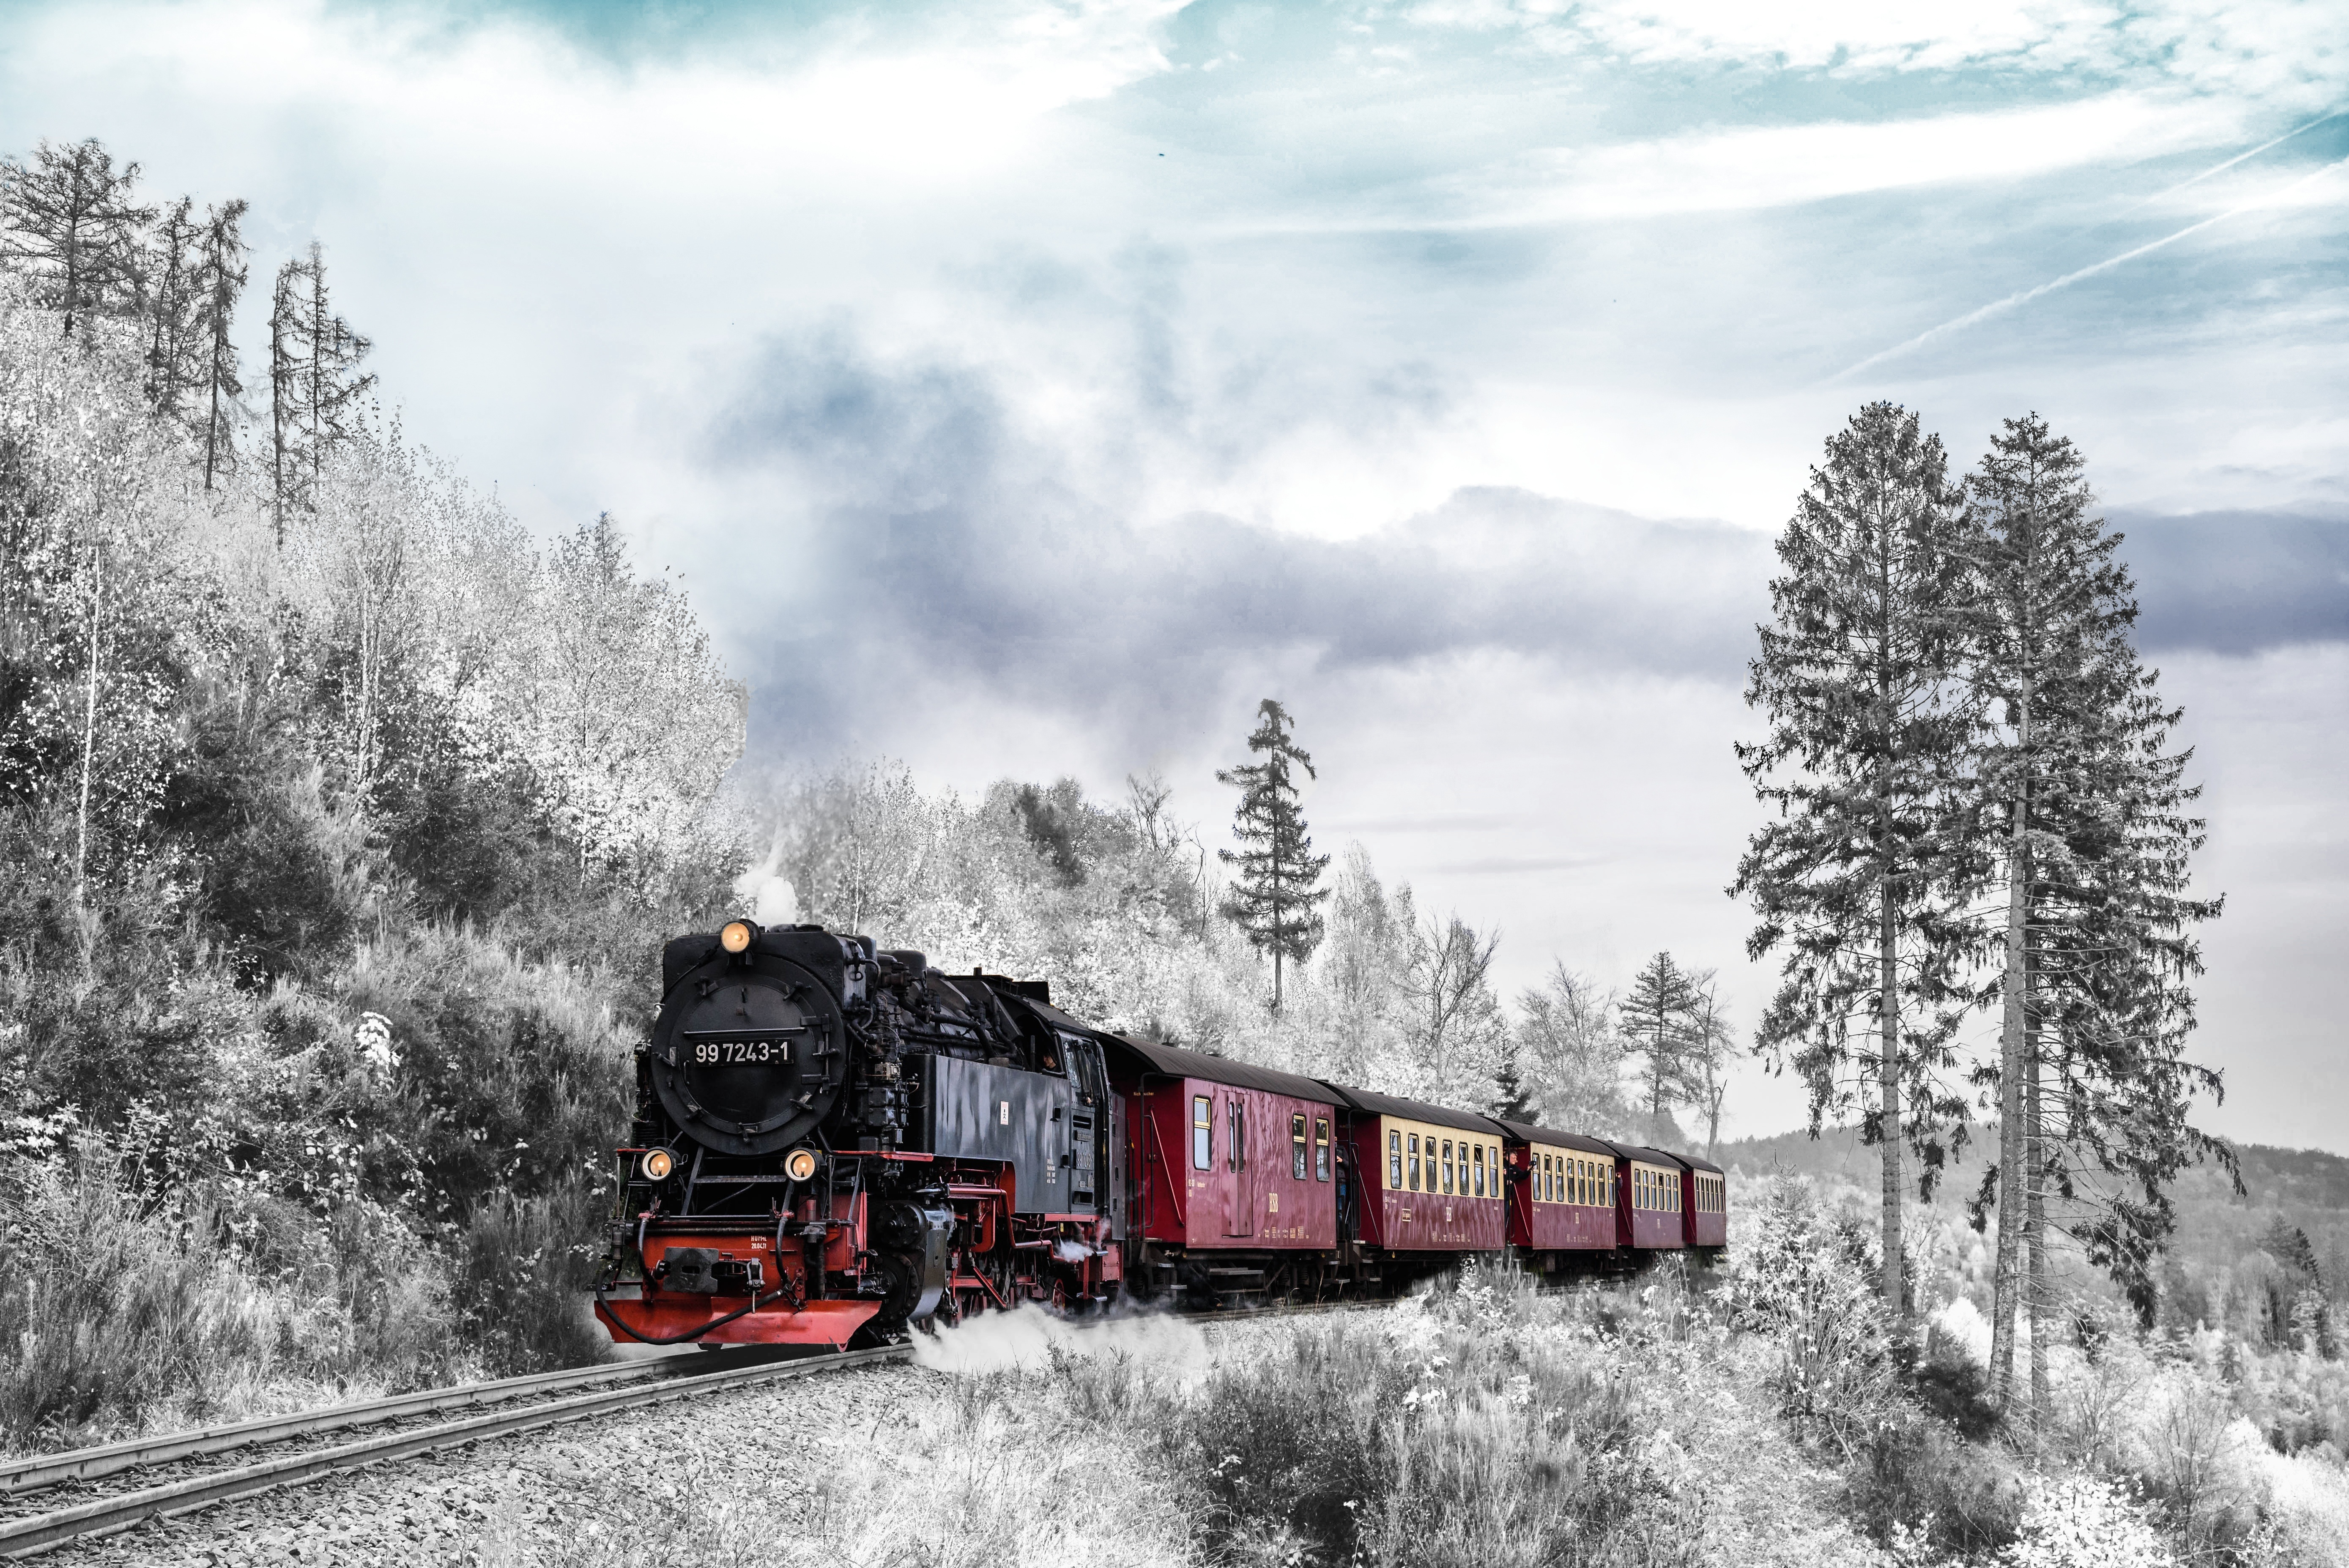 134324 download wallpaper Miscellanea, Miscellaneous, Train, Forest, Winter, Railway, Snow screensavers and pictures for free